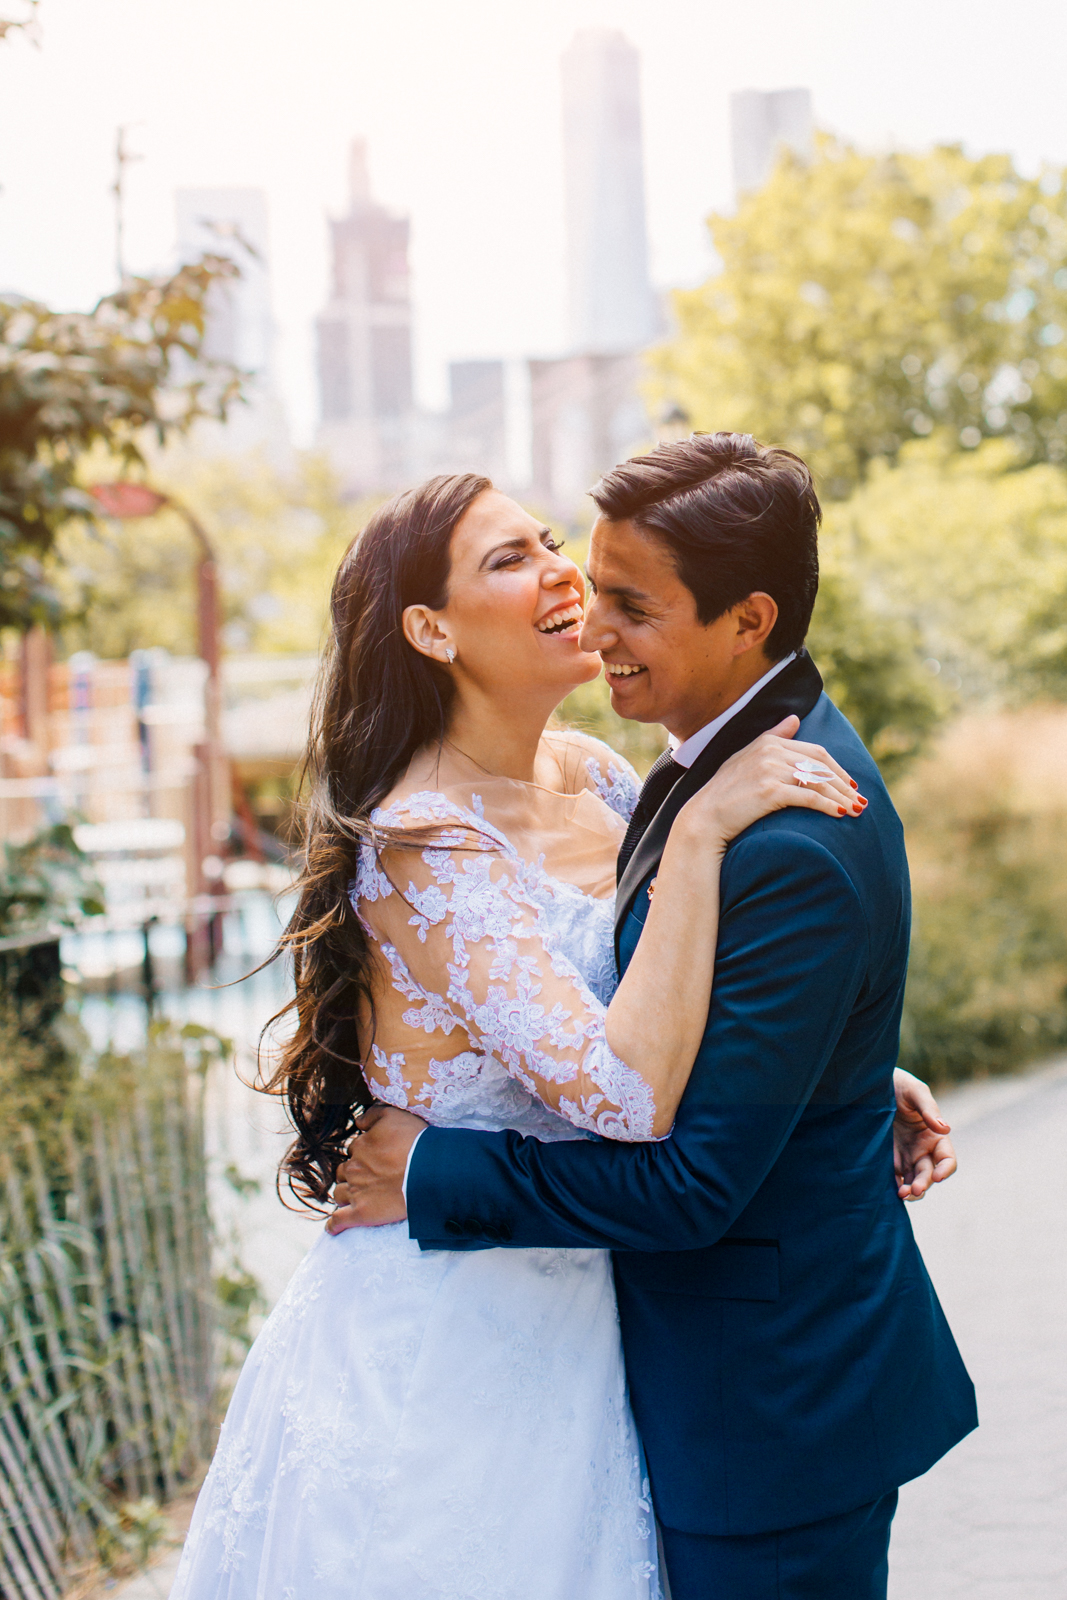 NYC Wedding Photography Lofts at Prince Brooklyn NYC Photographer Boris Zaretsky _B2C4961-Edit.jpg